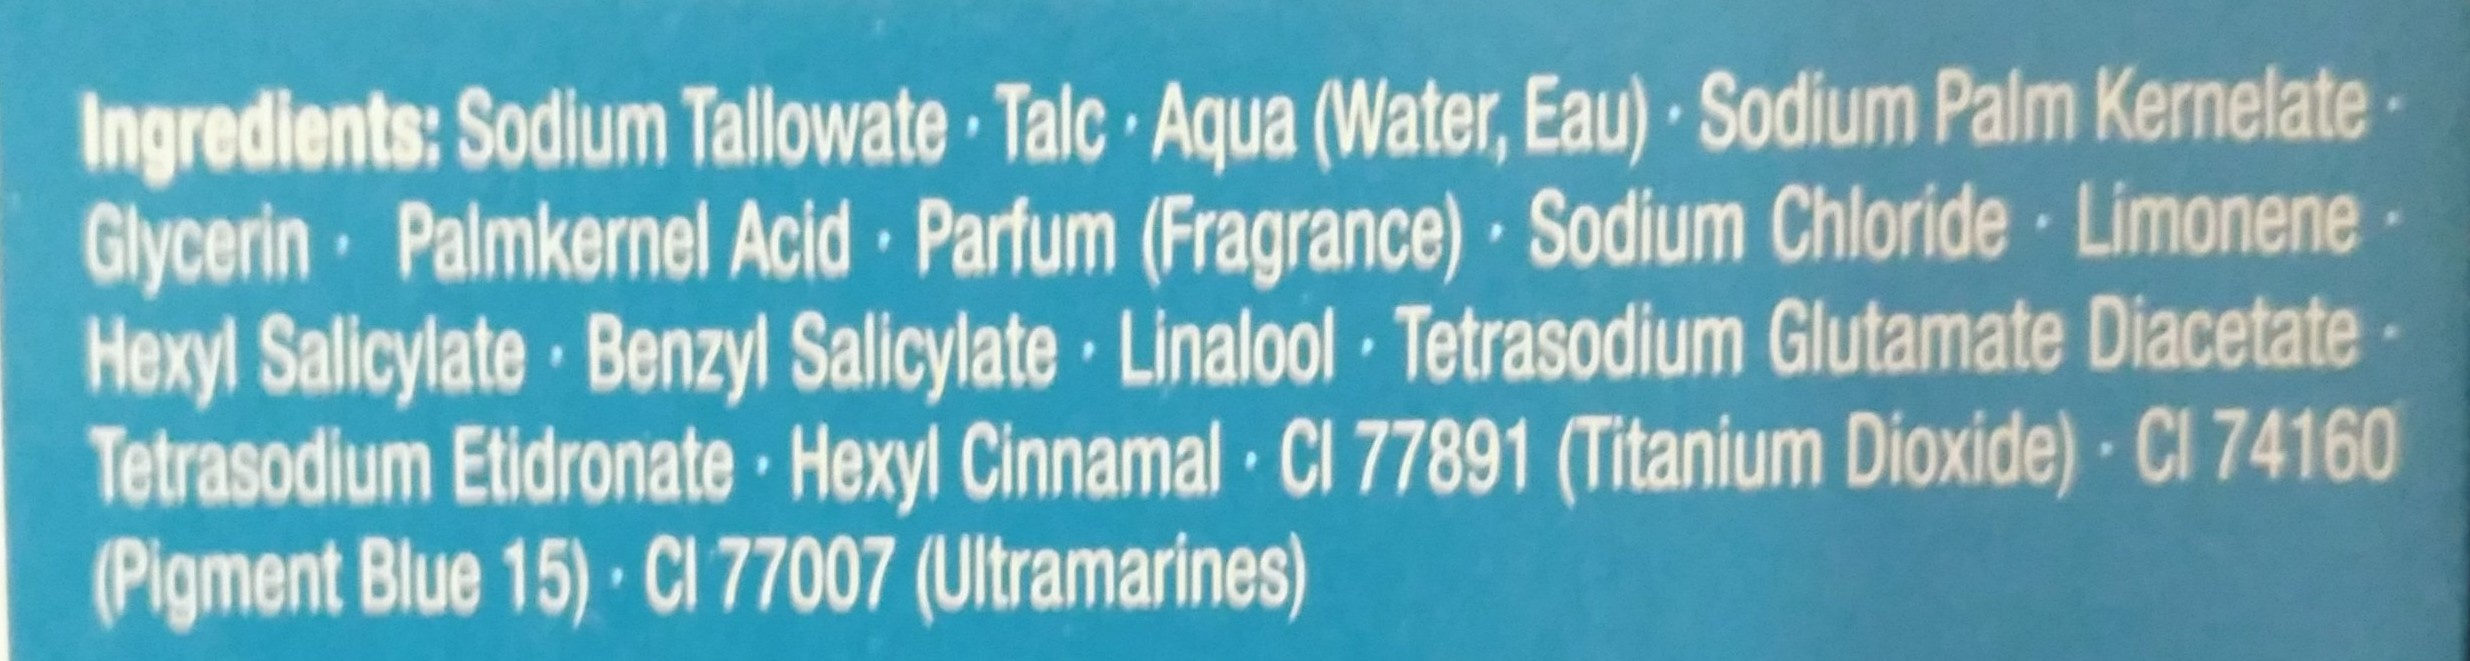 Vitalizing Aqua Festseife mit aquatisch-frischem Duft - Ingredients - de